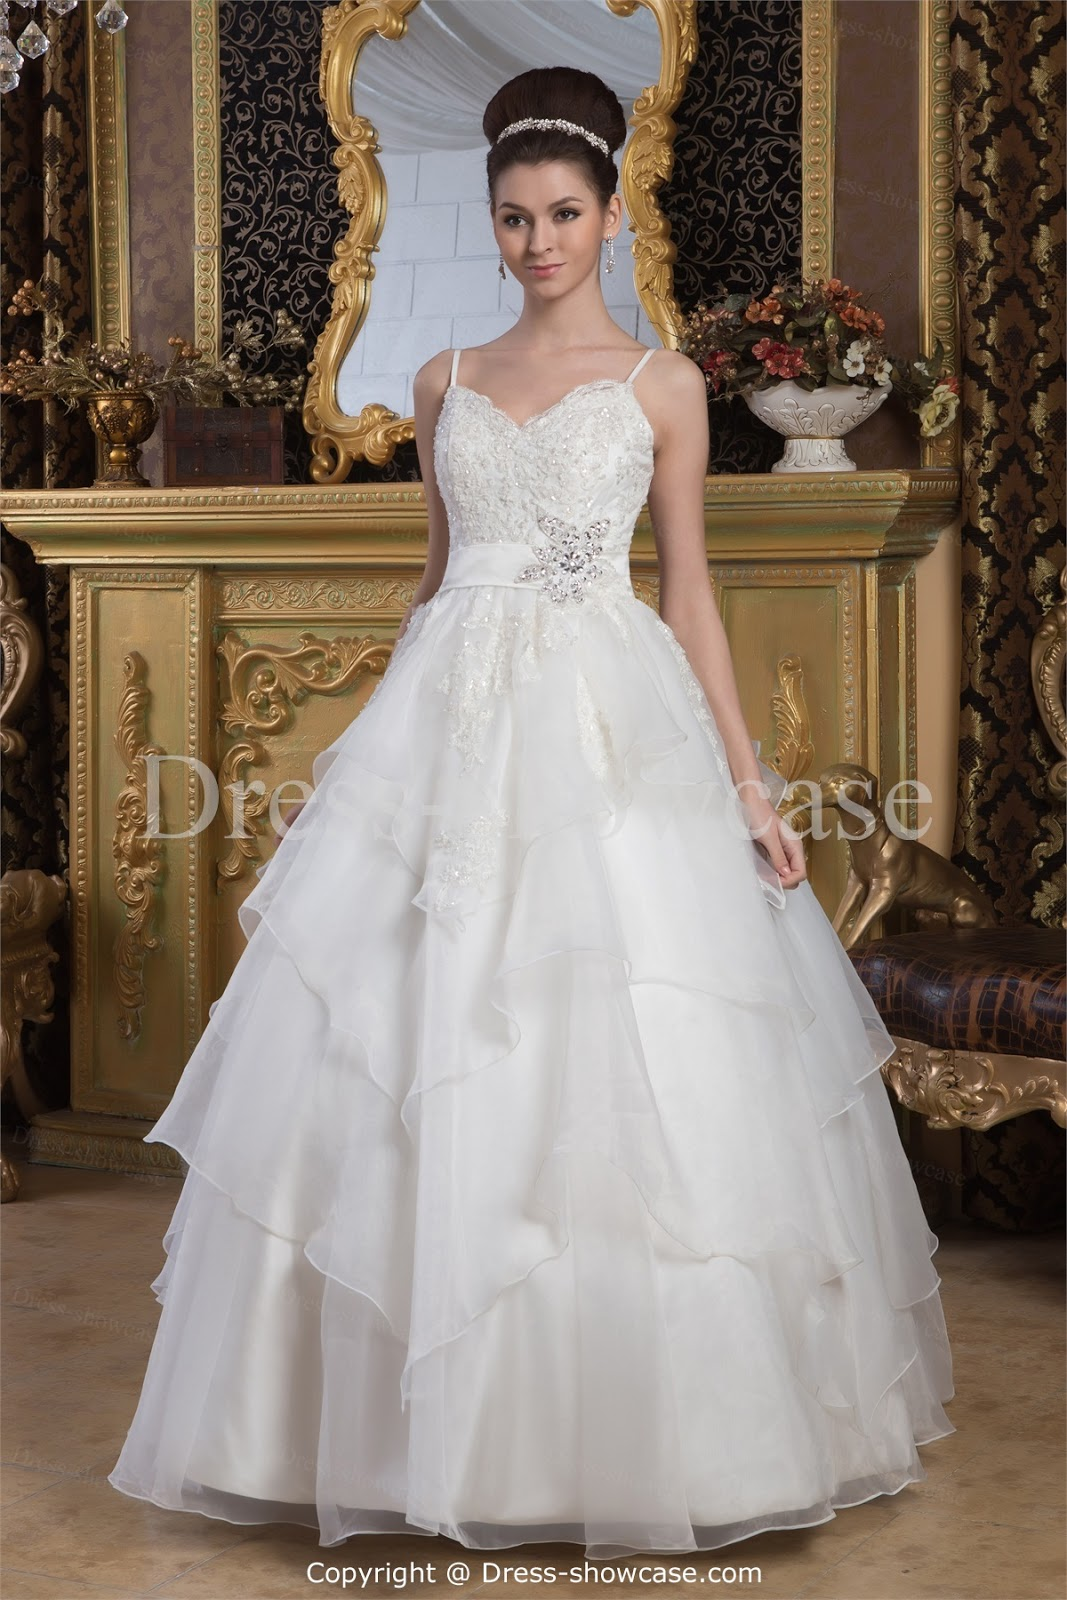 Wedding dresses for petite women for Image of wedding dresses